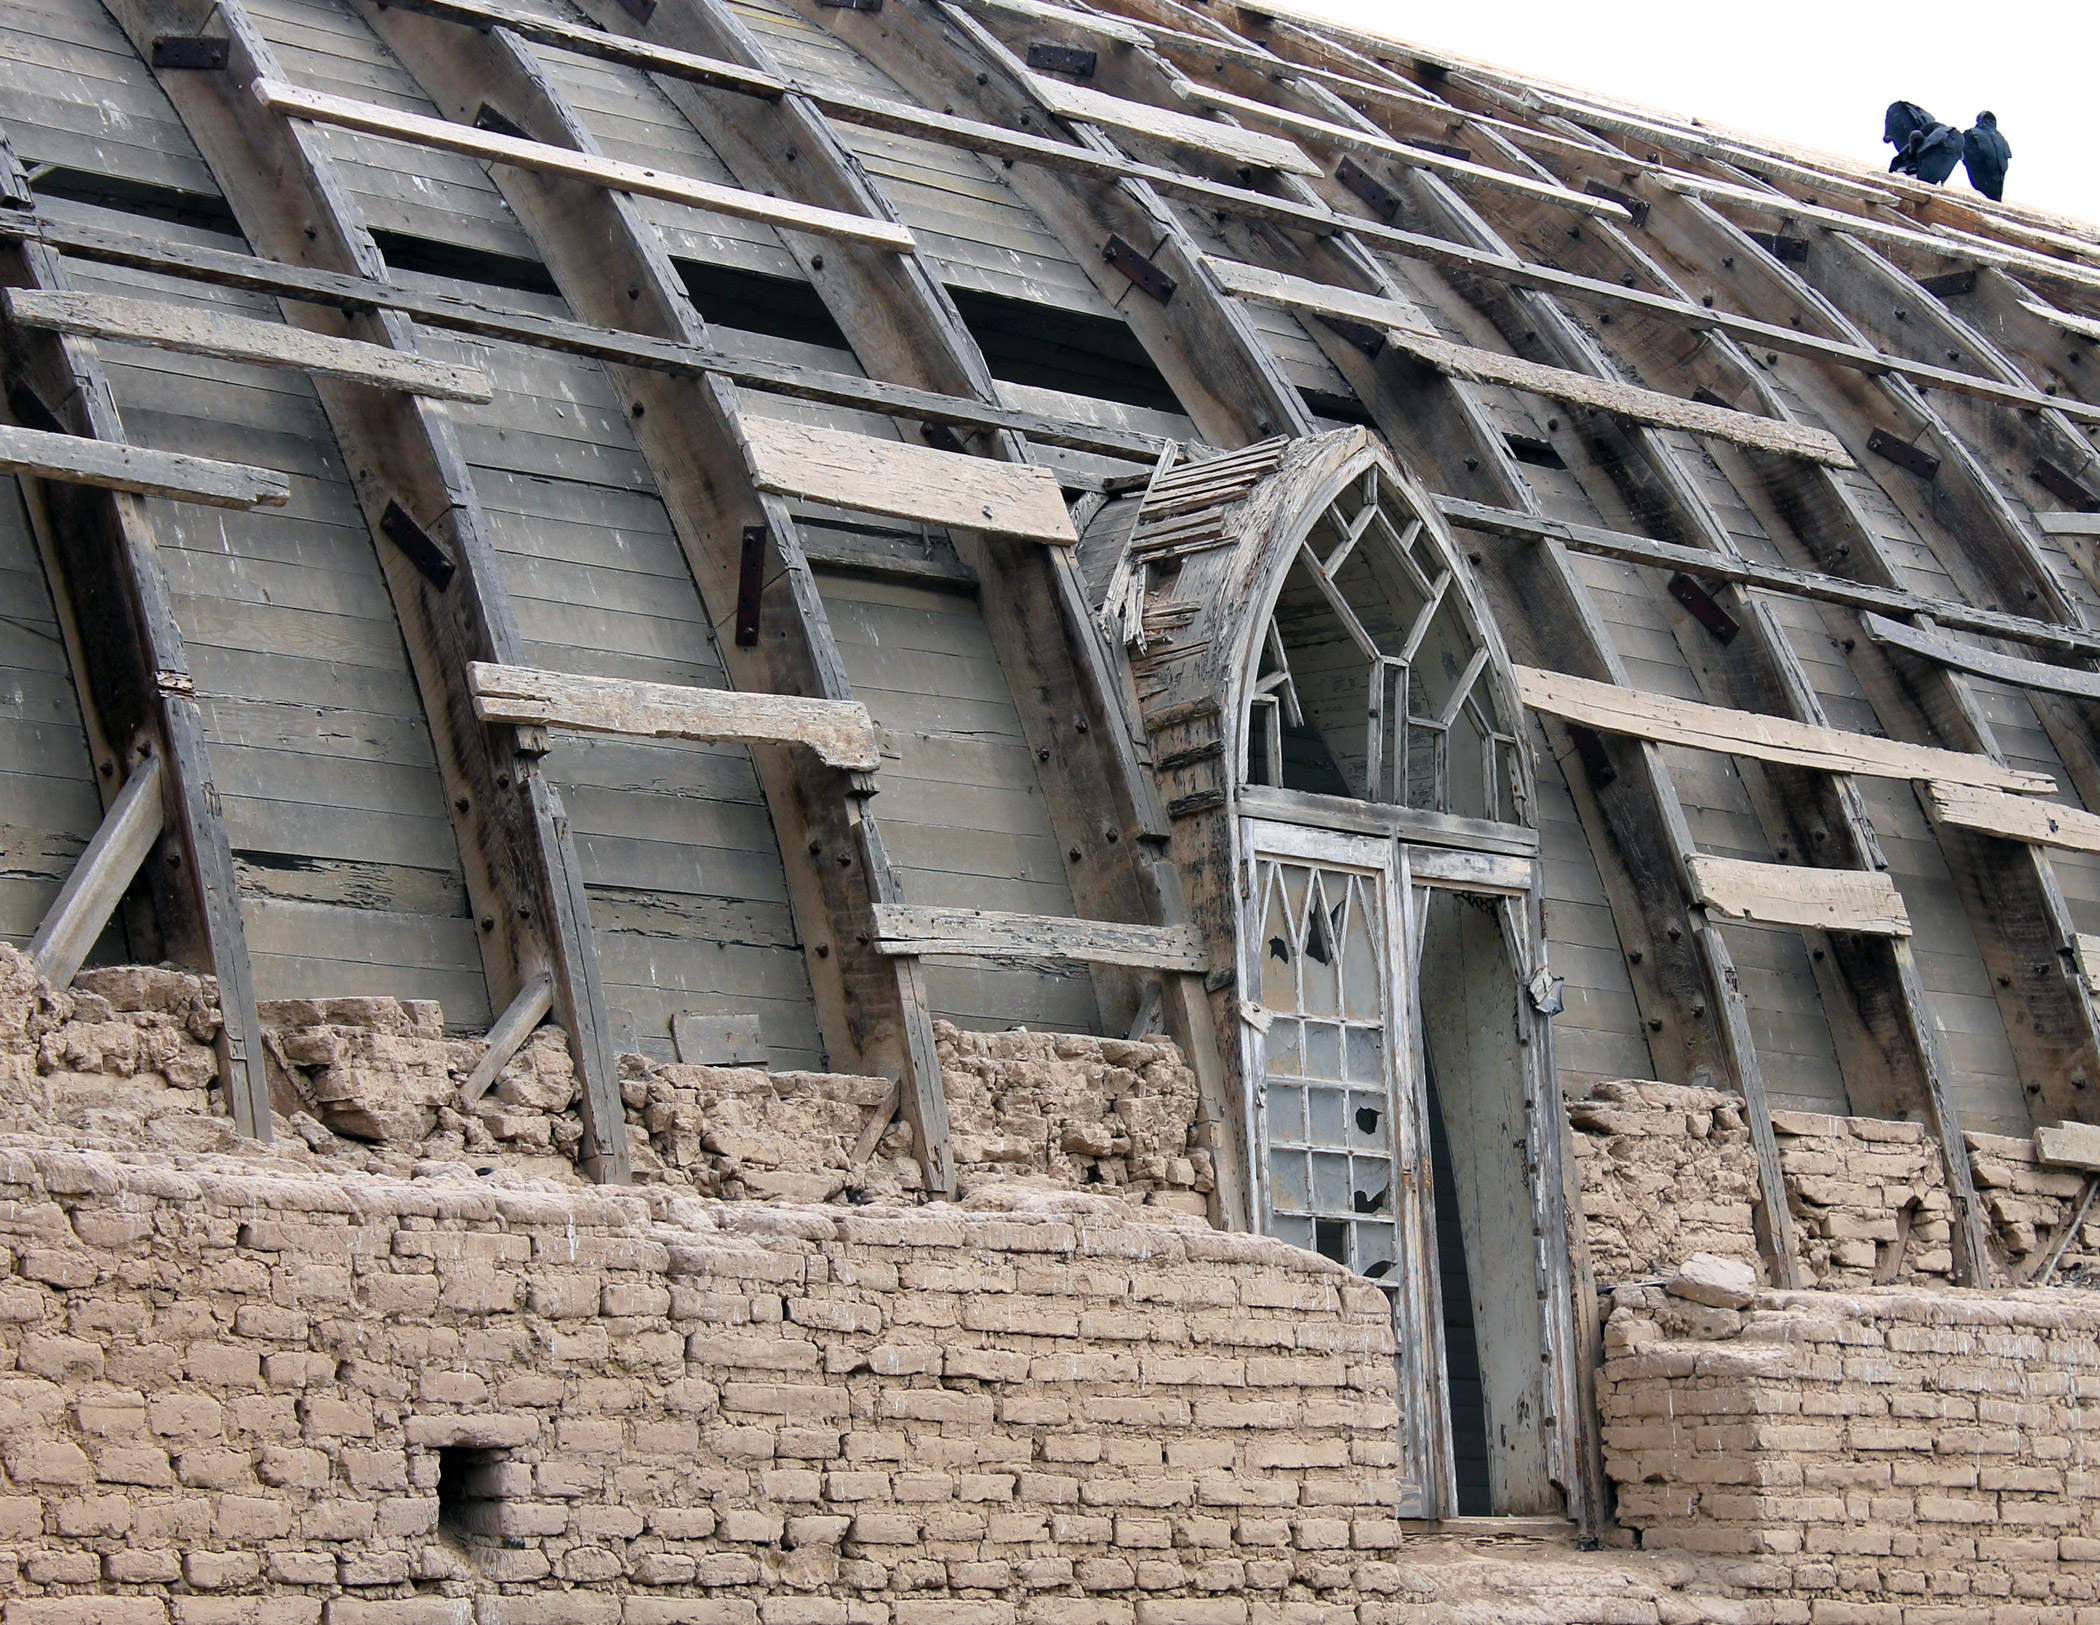 Peru, La Ermita de                               Barranco: A crumbling church in a lively district of Lima with the potential for revitalization, La Ermita de Barranco is a reminder of the neighborhood's origin as a humble fishing village.